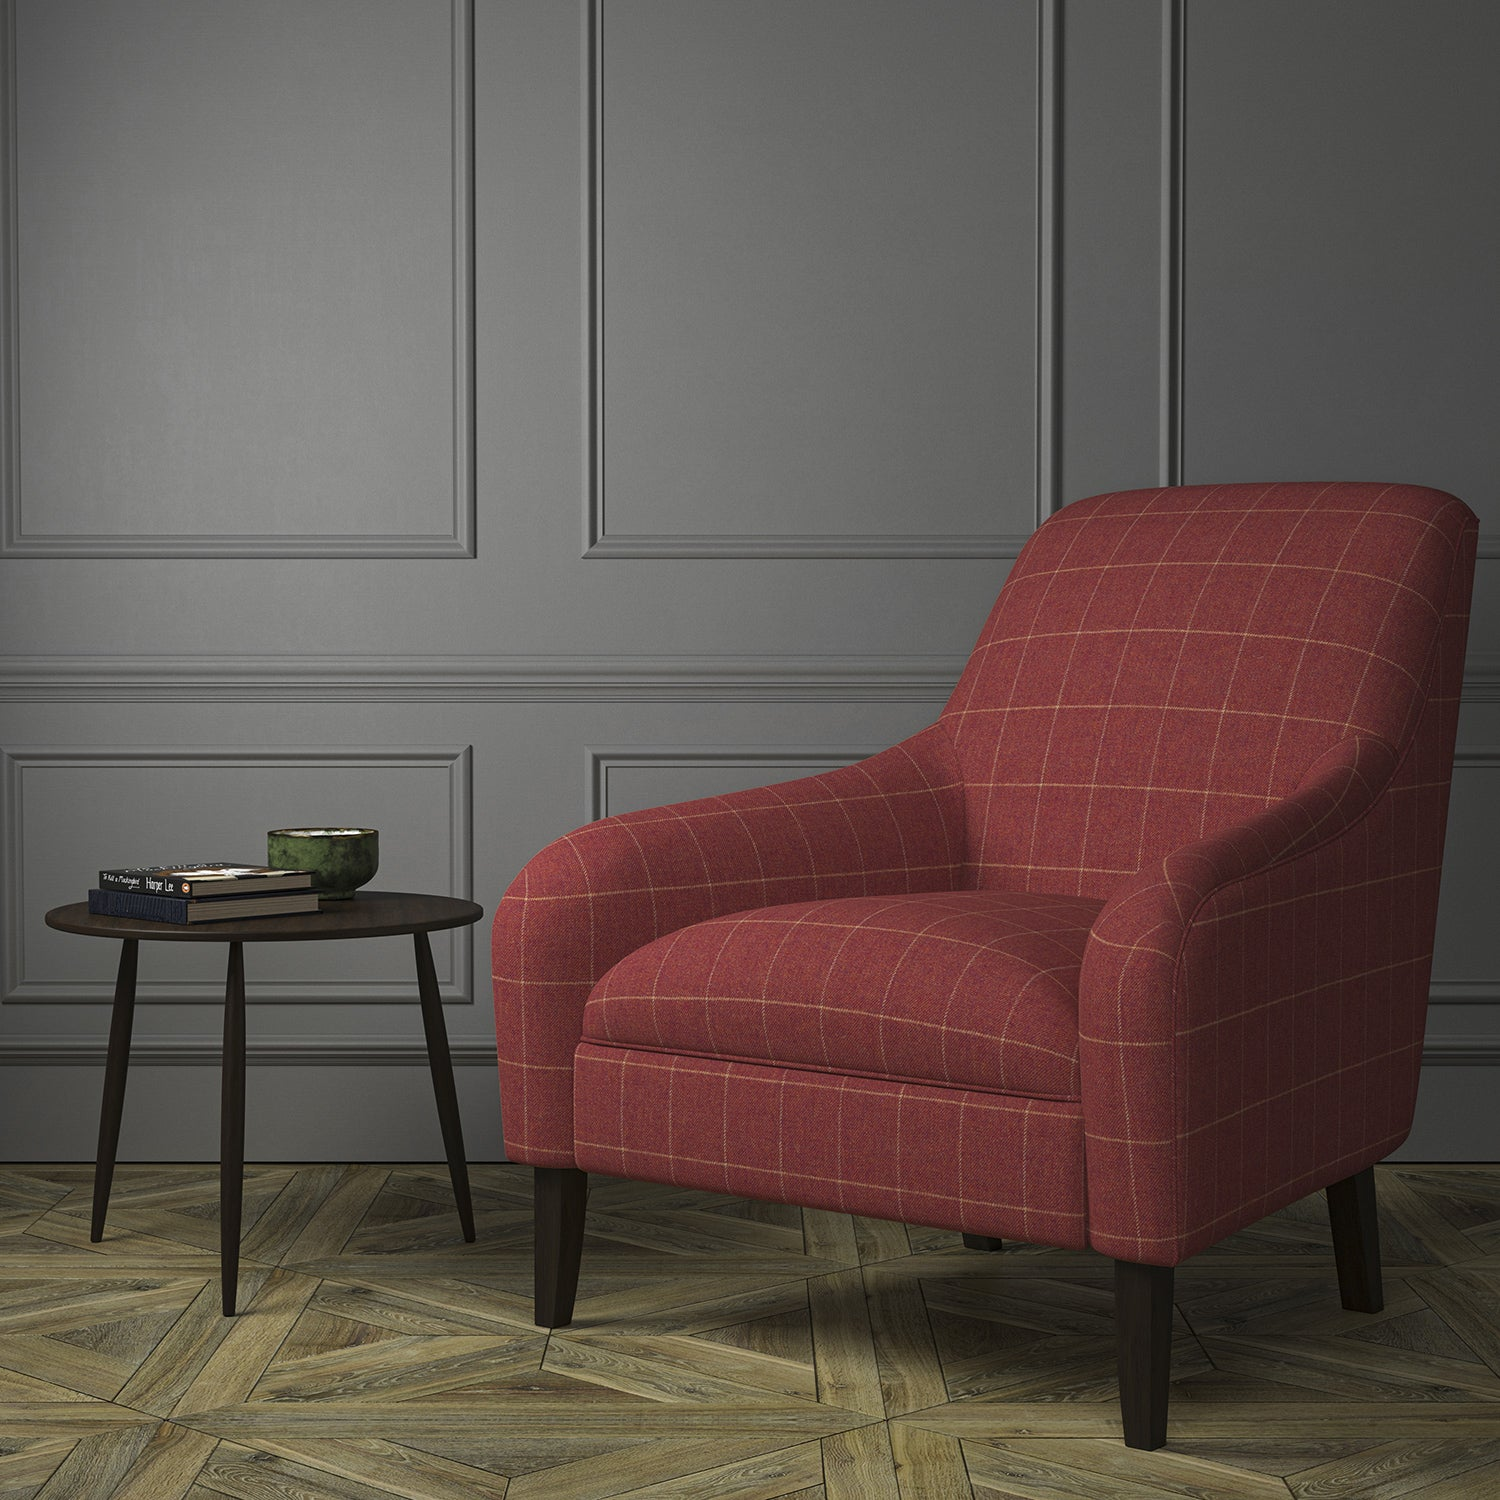 Chair upholstered in a red Scottish wool windowpane check fabric